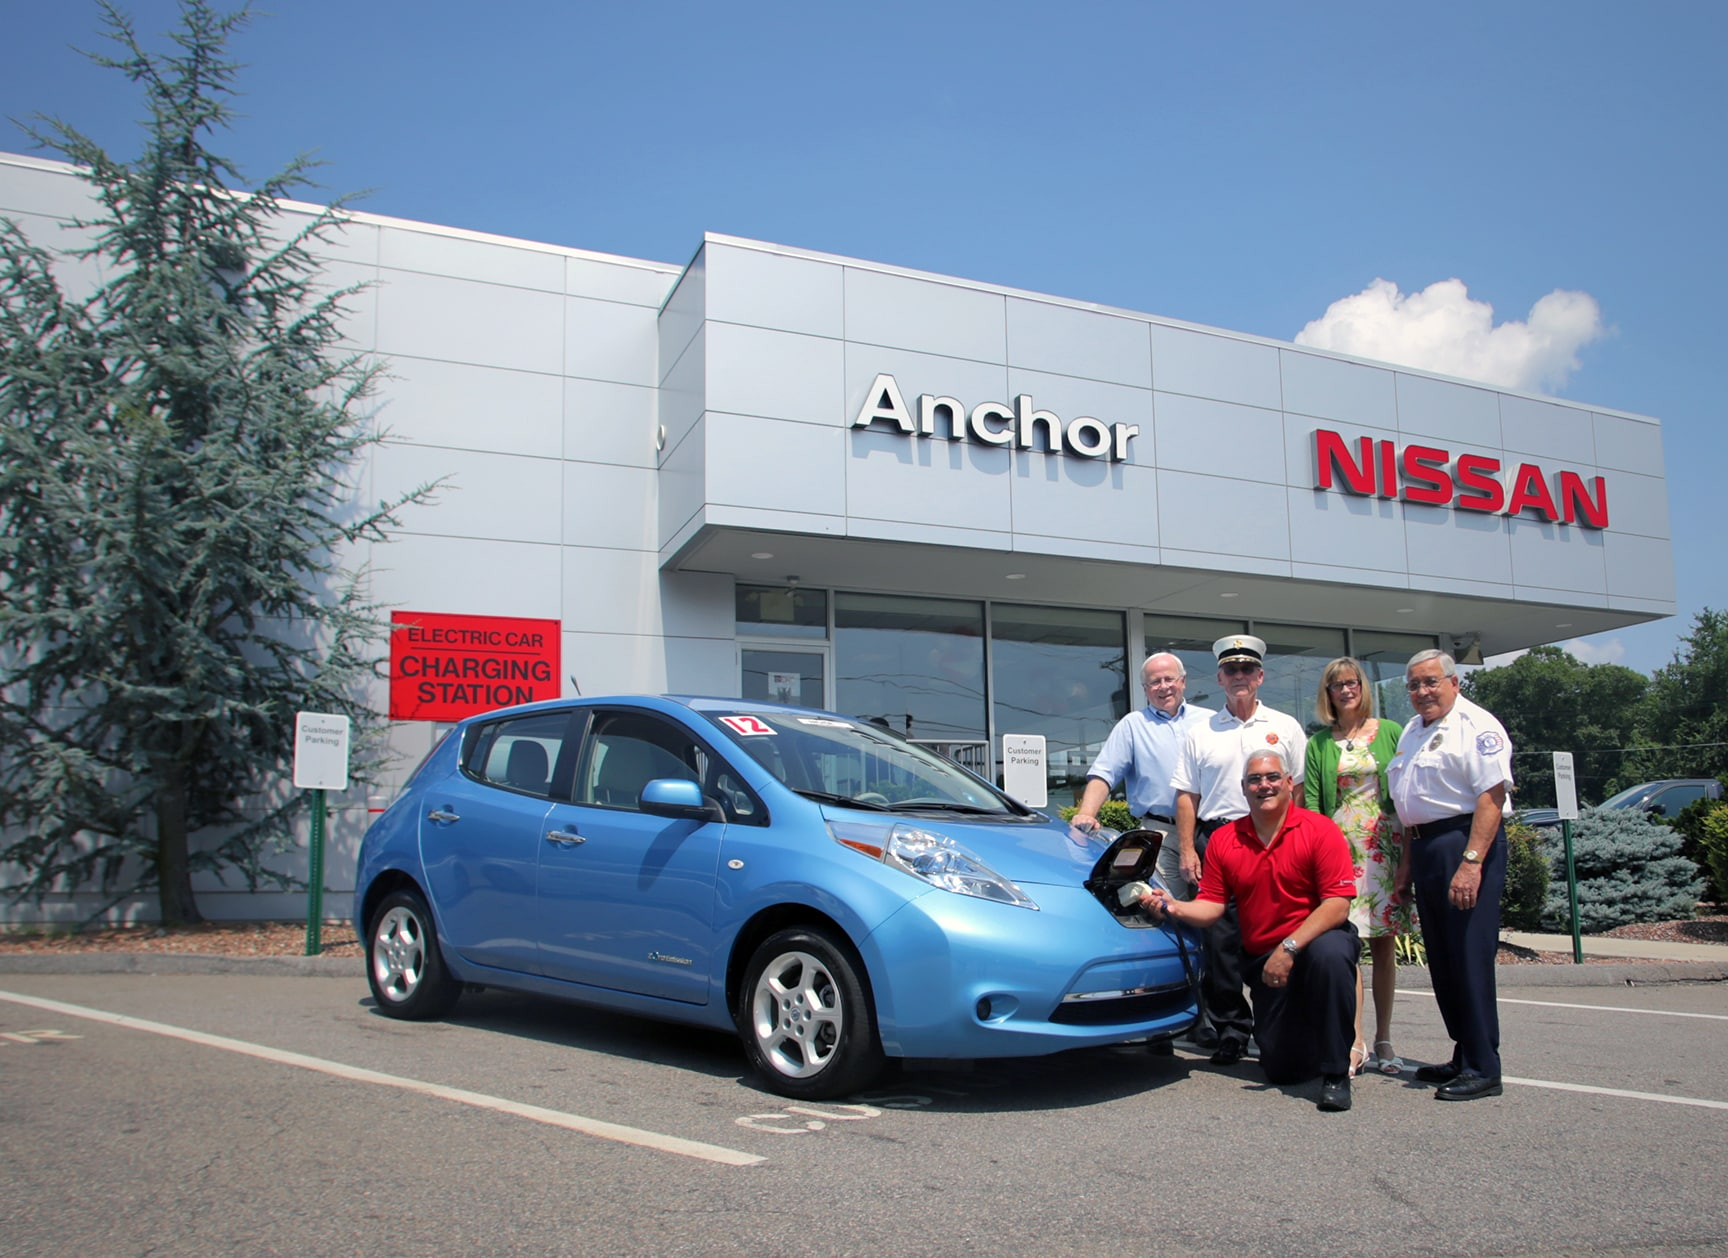 Anchor Nissan | New Nissan dealership in North Smithfield, RI 02896